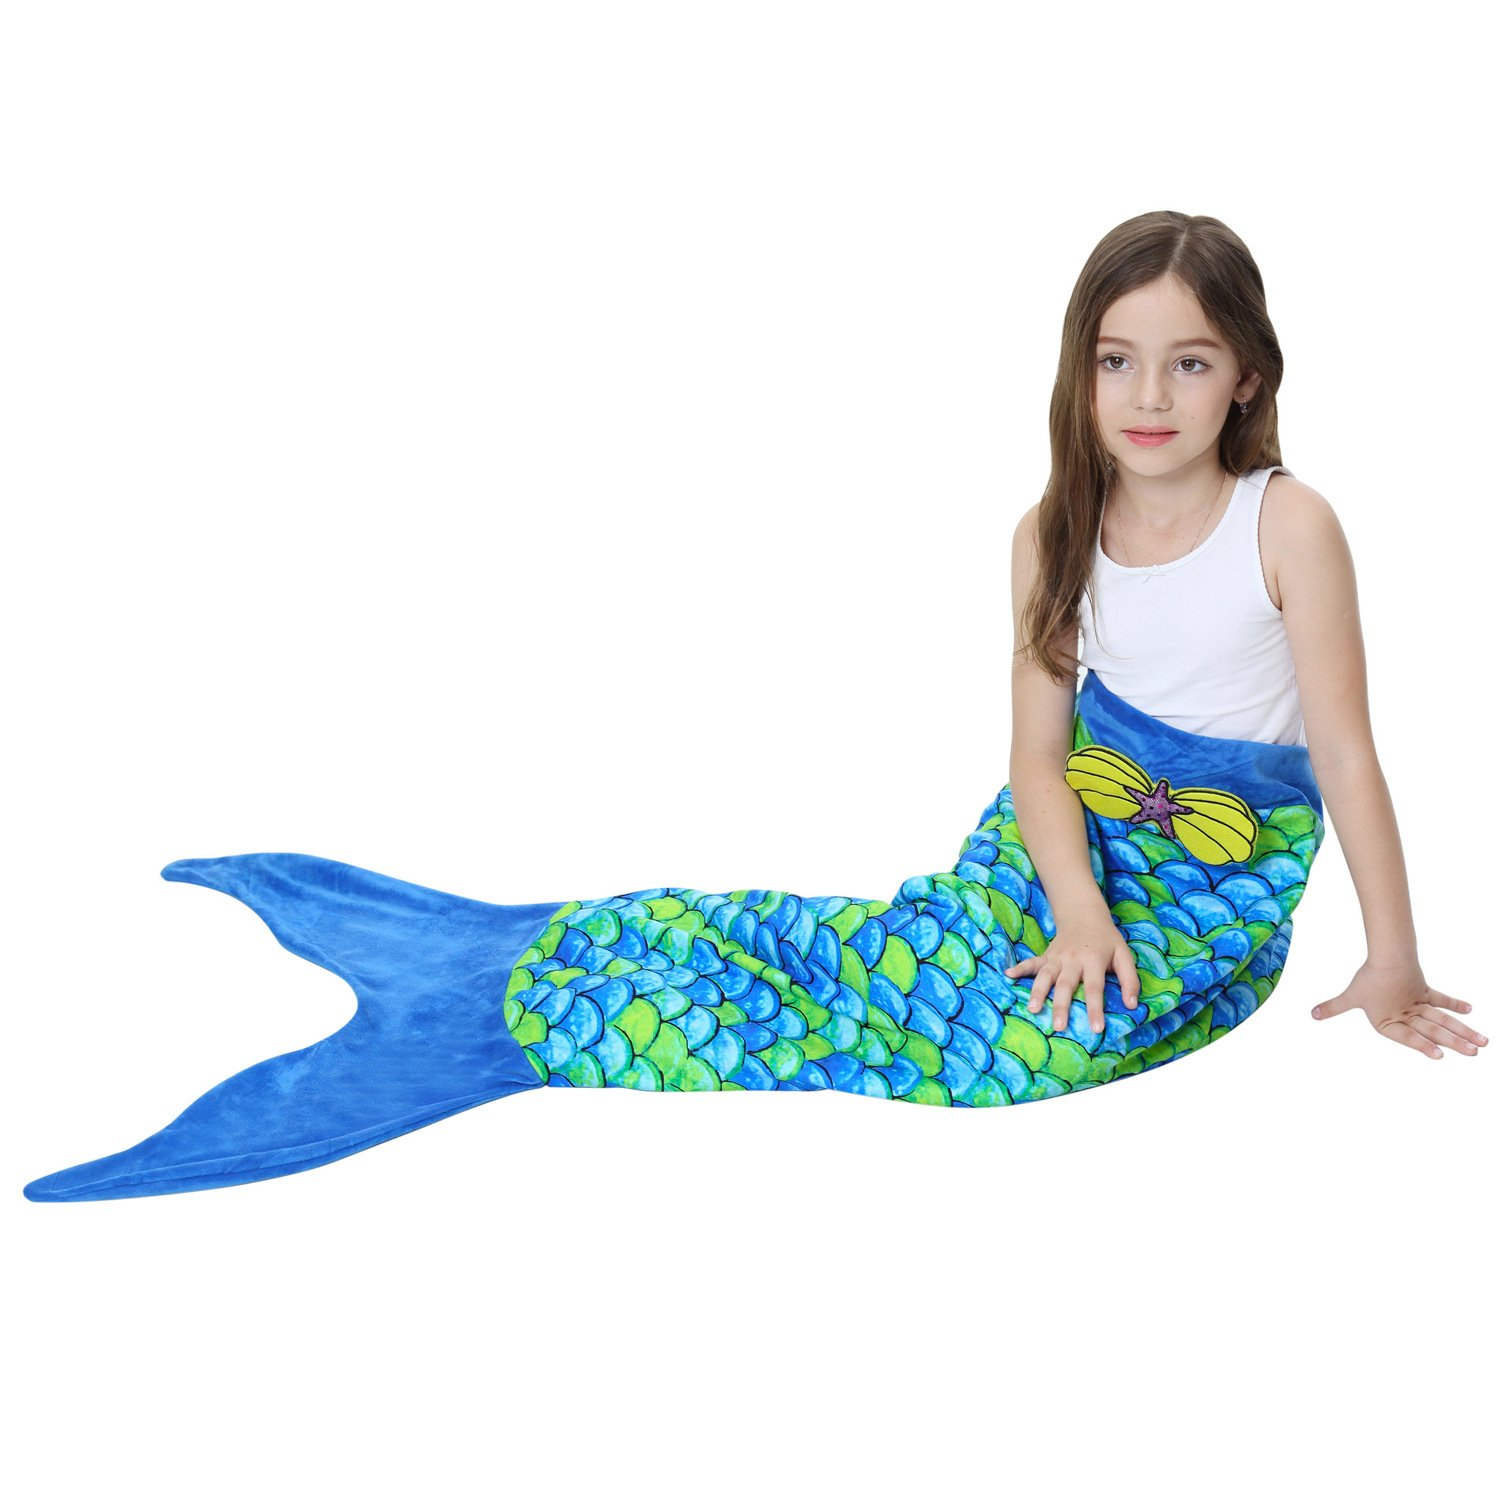 Adkinly Kids Polar Fleece Mermaid Tail Blanket Super Soft and Cute Sleeping Bag